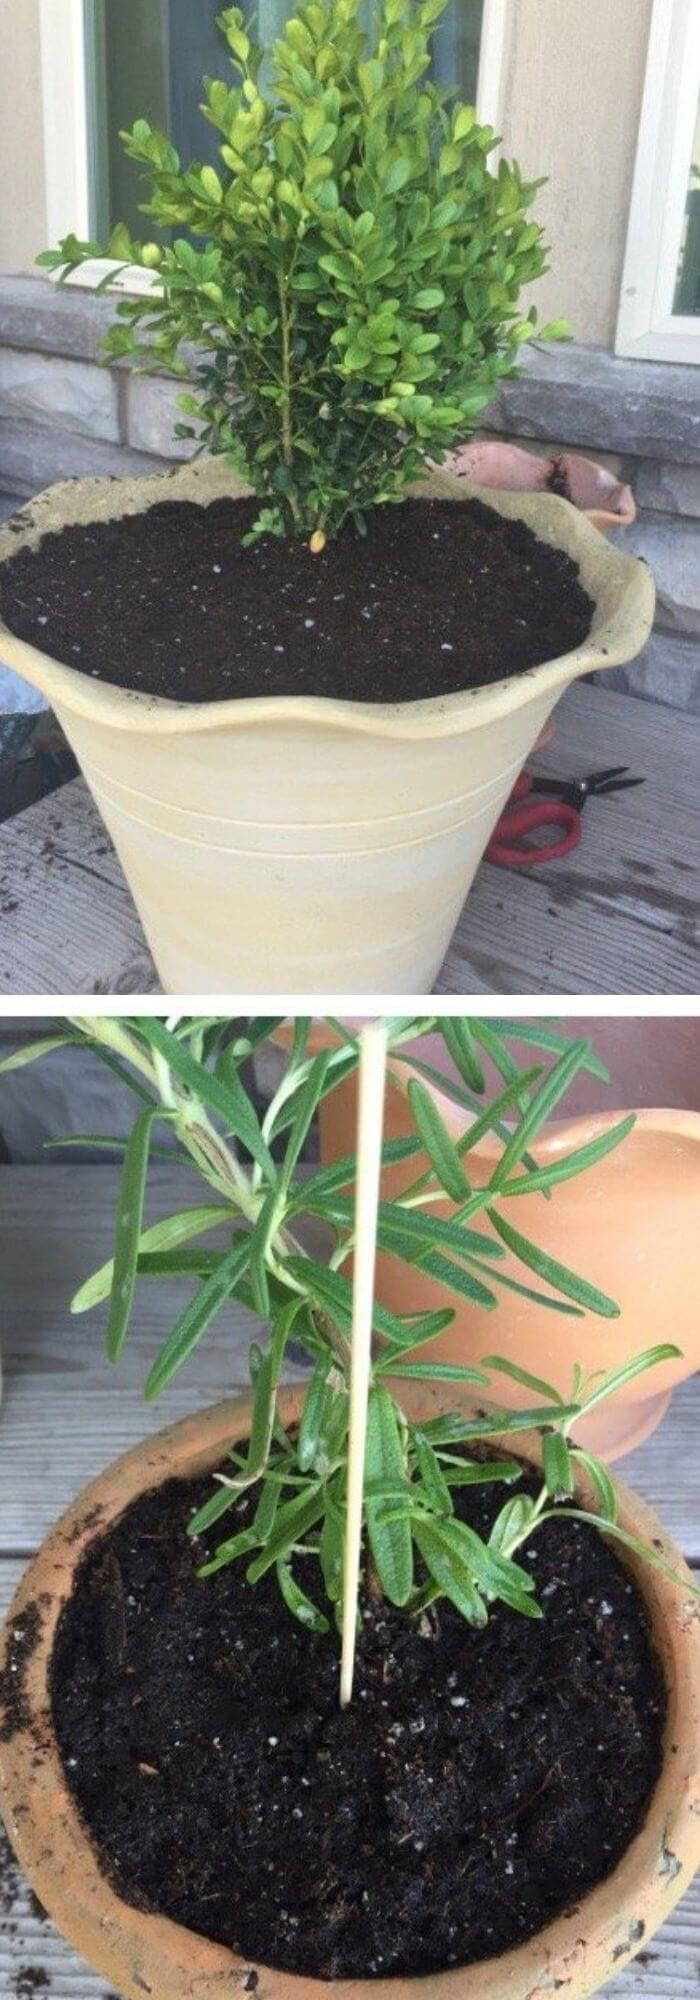 how to make a topiary tree in pot for beginners DIY Living Rosemary and Boxwood Topiary